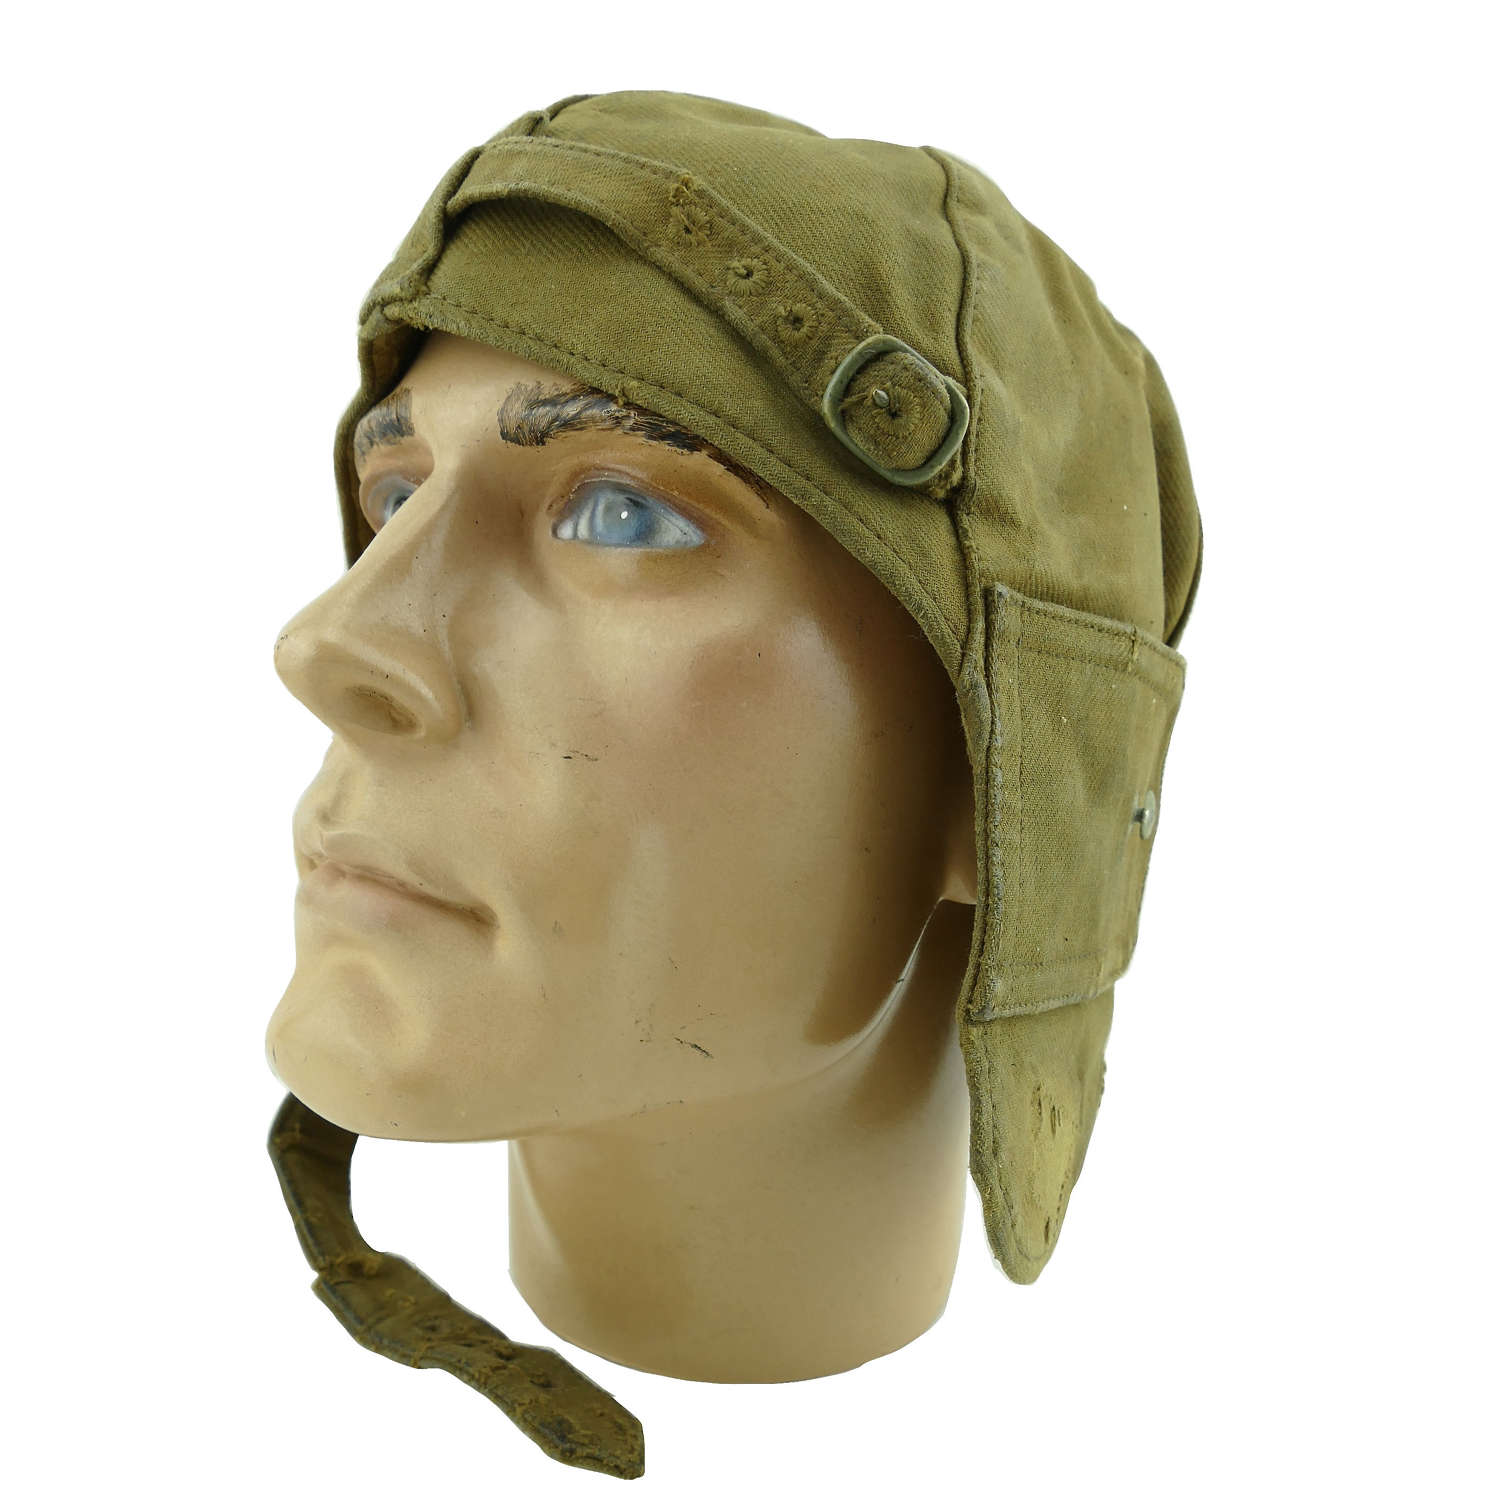 RAF training helmet